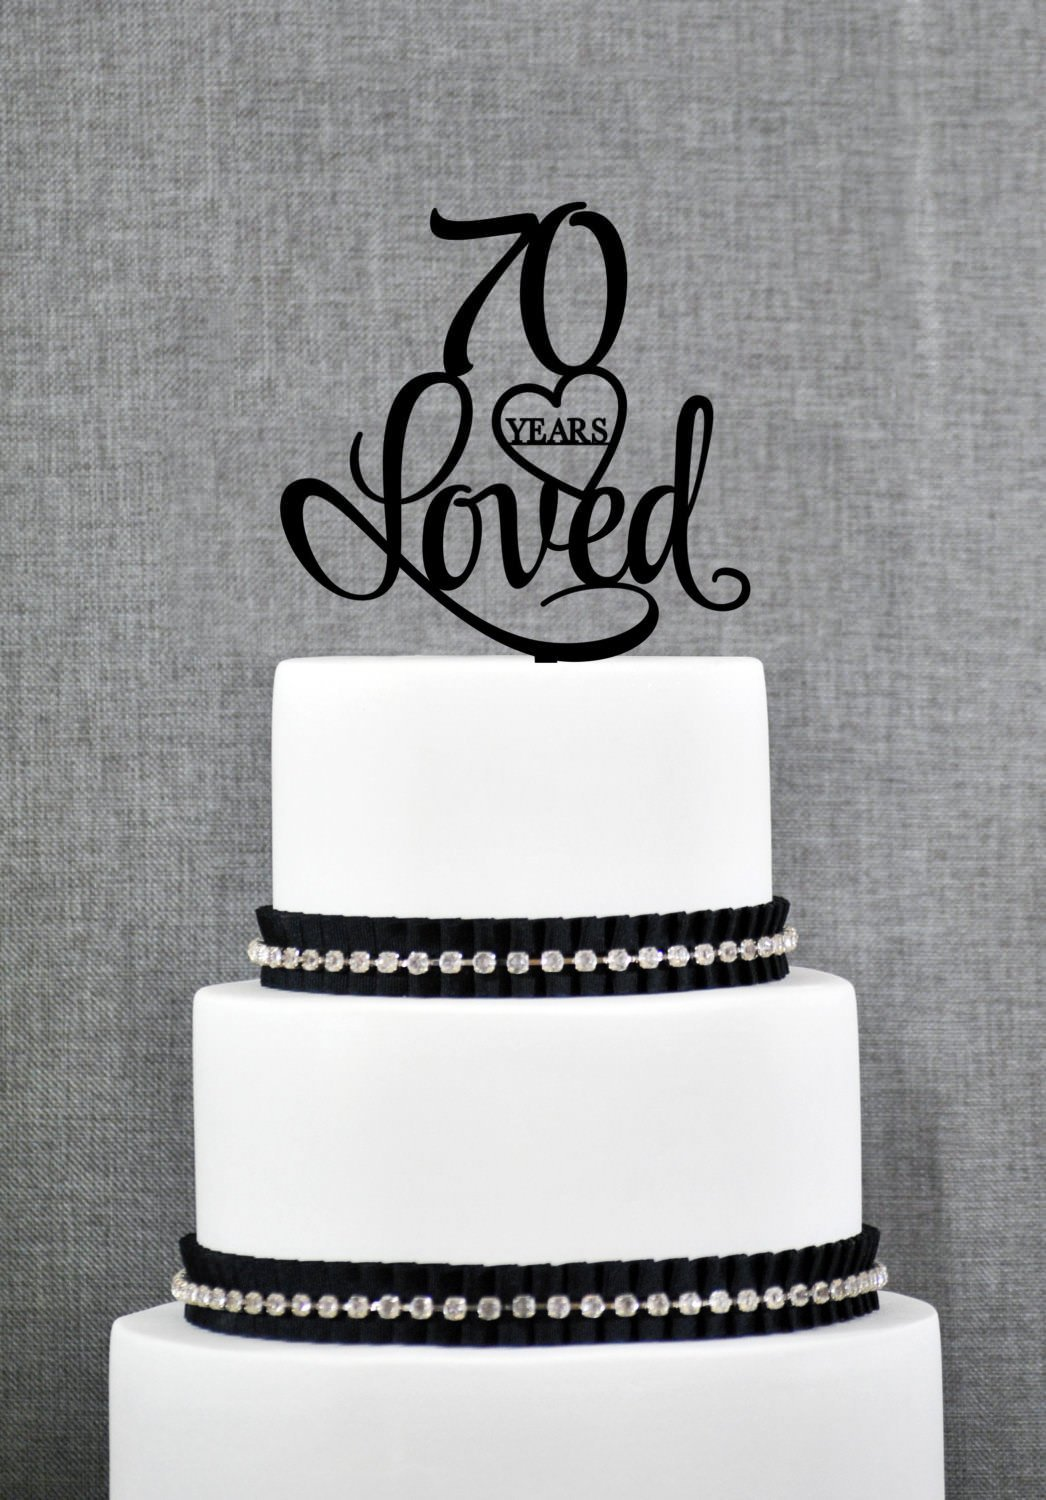 Get Quotations 70 Years Loved Birthday Cake Topper Elegant 70th Anniversary Gift